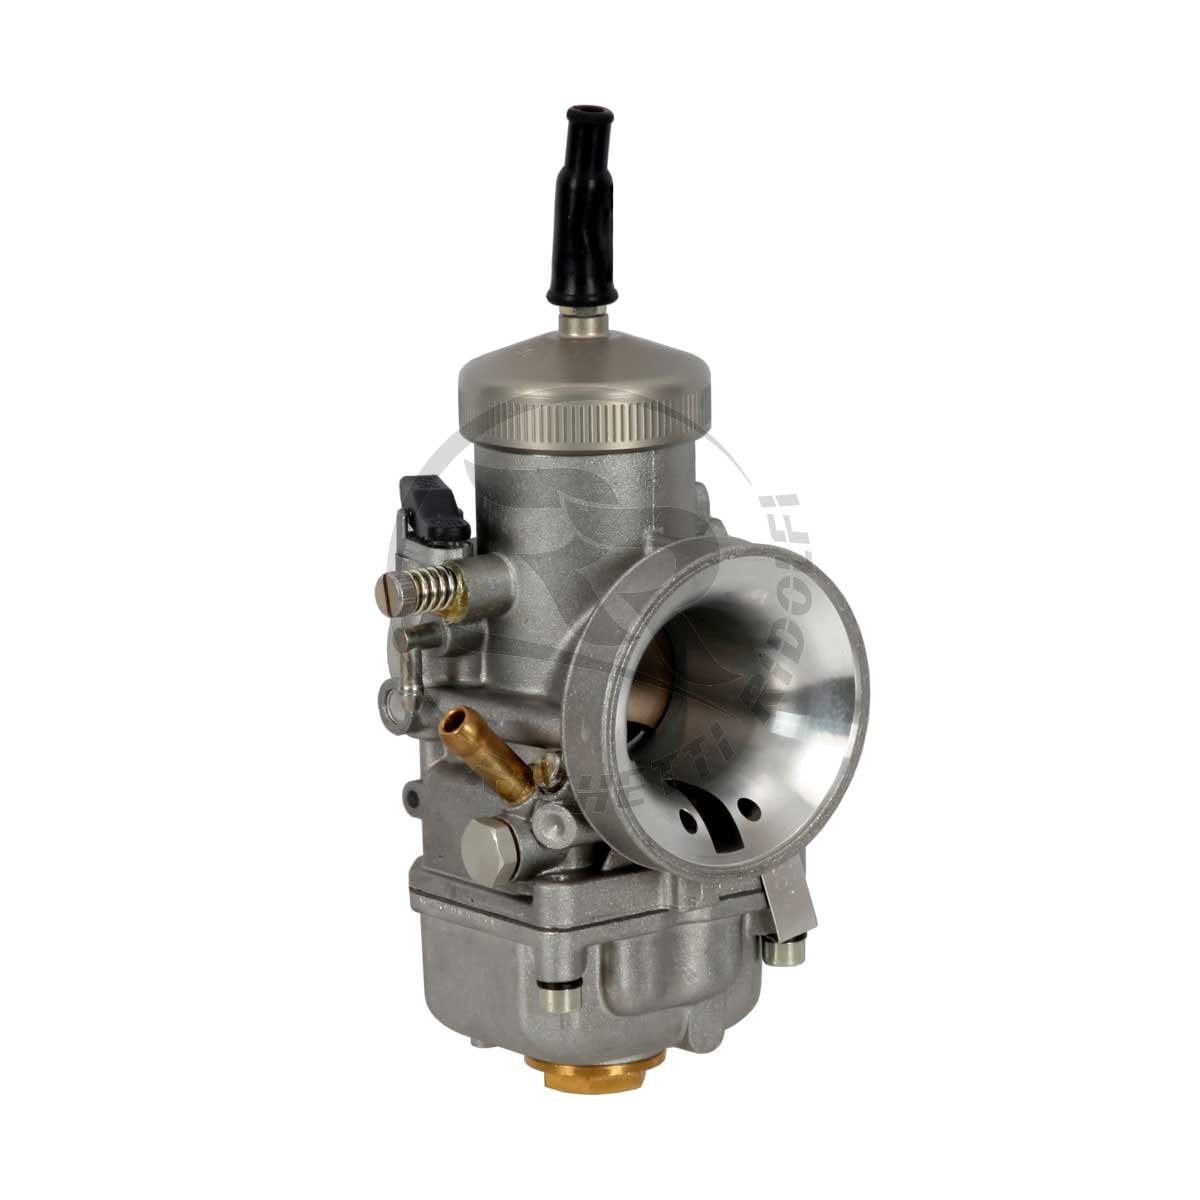 CARBURETTOR DELL'ORTO VHSH 30 CS